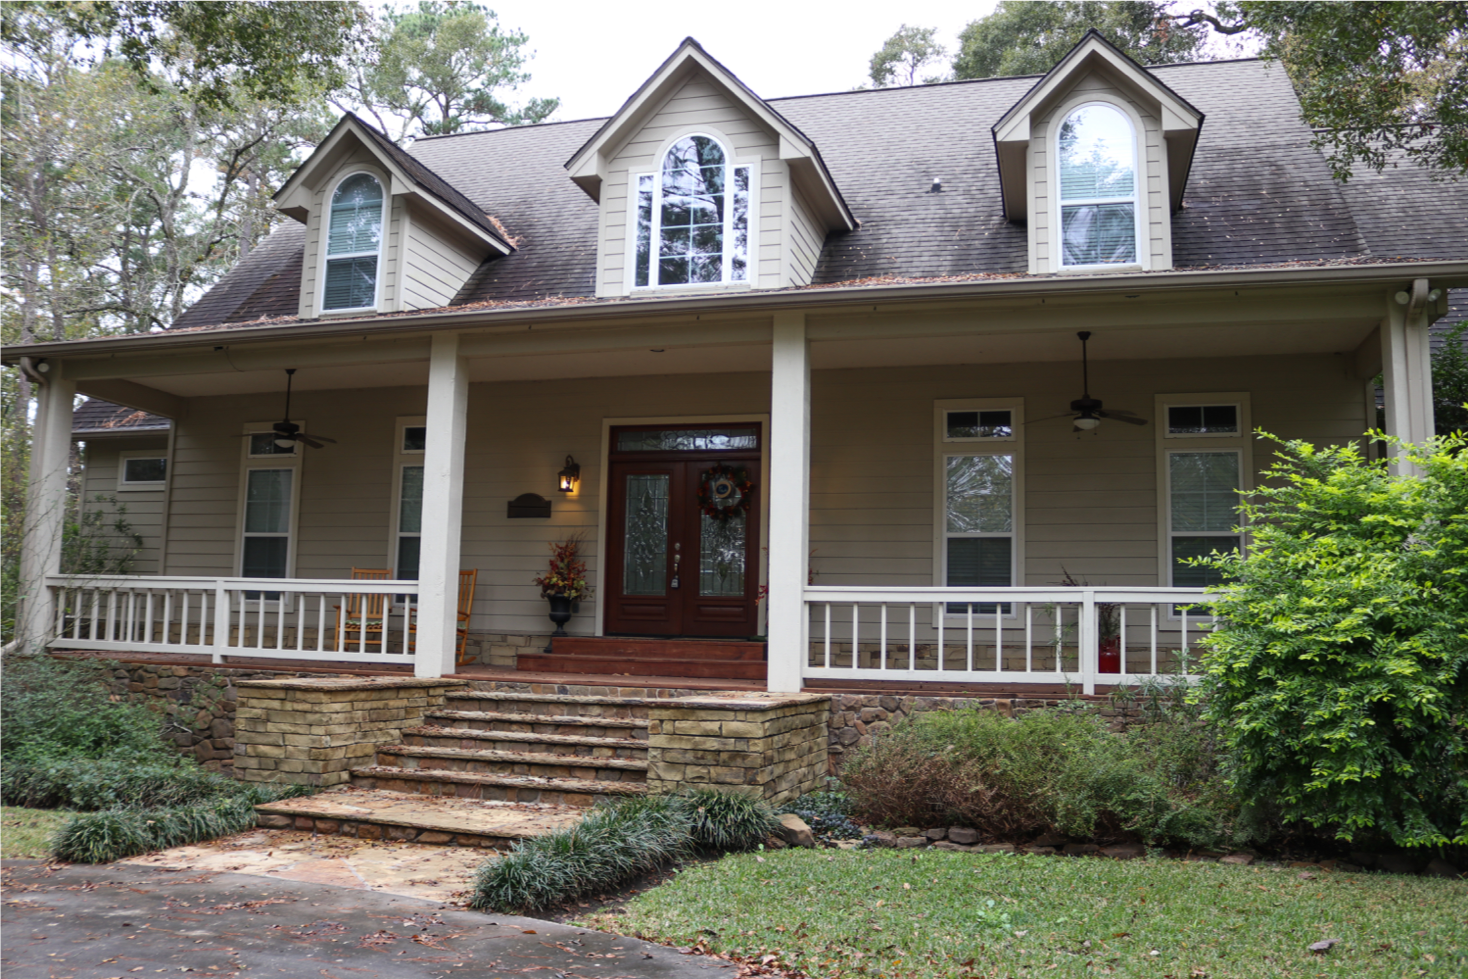 About - Redeemed owns and operates an 8-bed restoration house in the Houston area for women. The house is a place of healing and hope for the journey ahead. We have designed a program to the uniqueness of each individual.